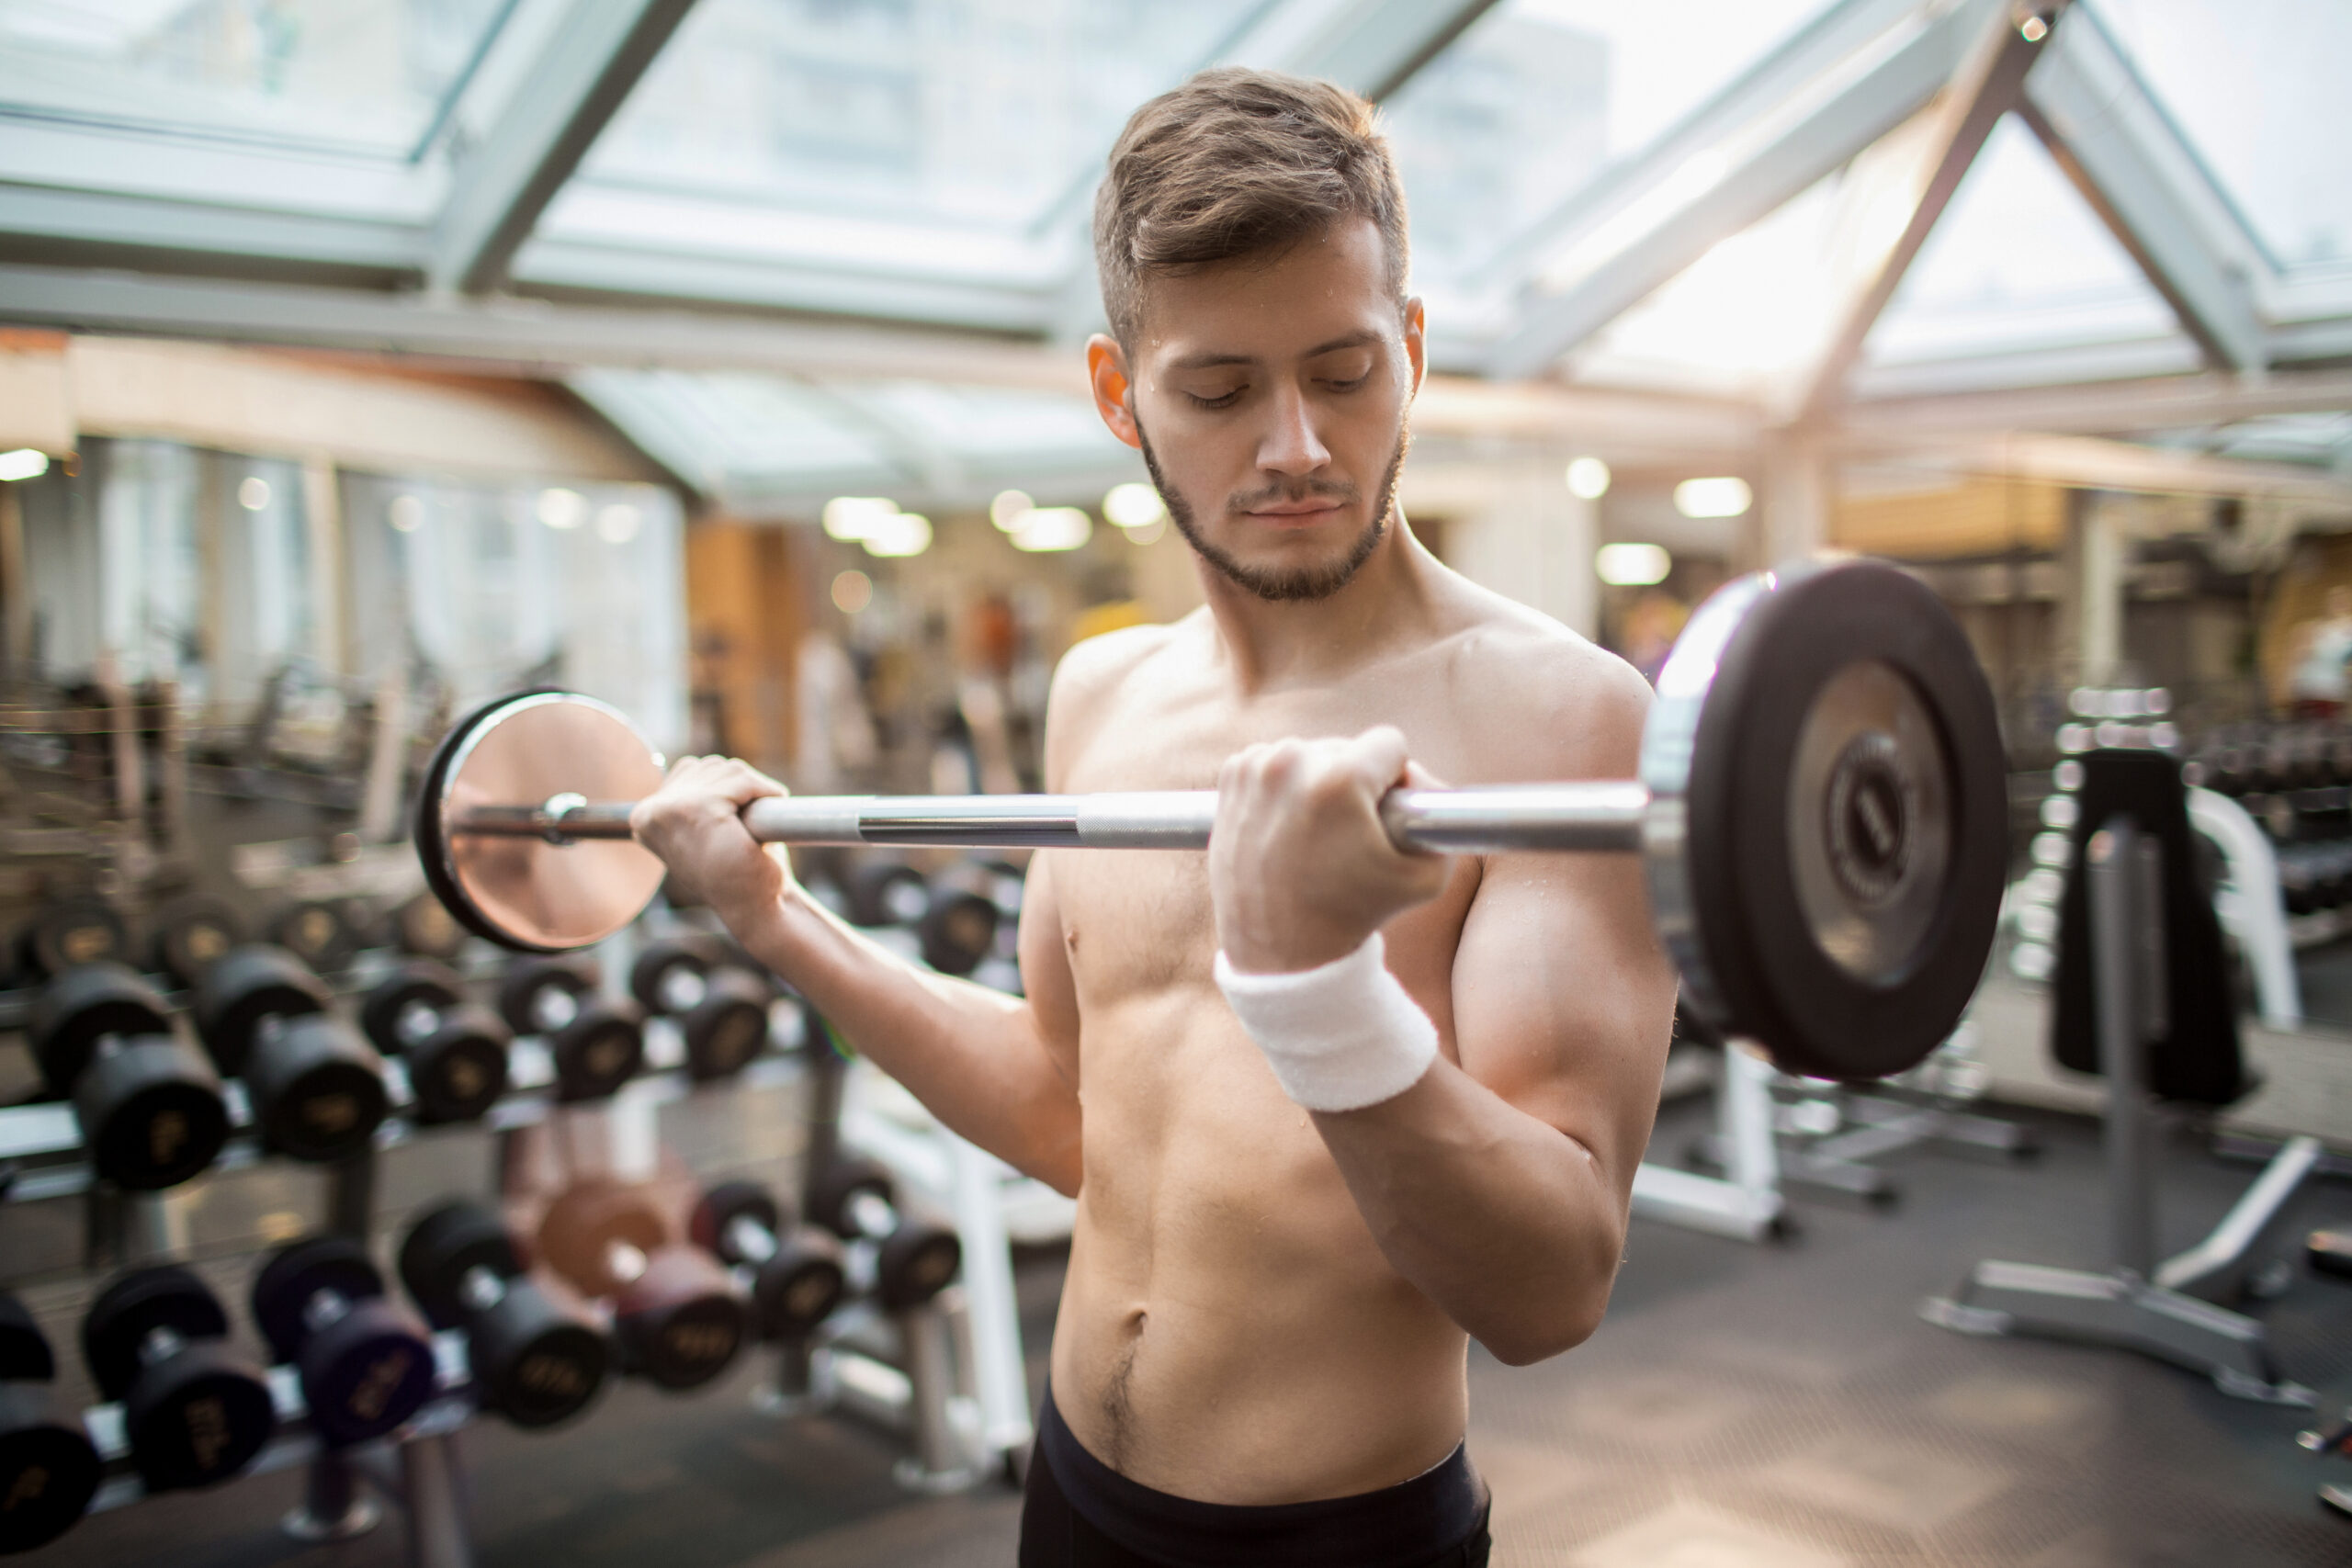 THE ULTIMATE SKINNY GUY'S GUIDE TO MUSCULAR GAINS